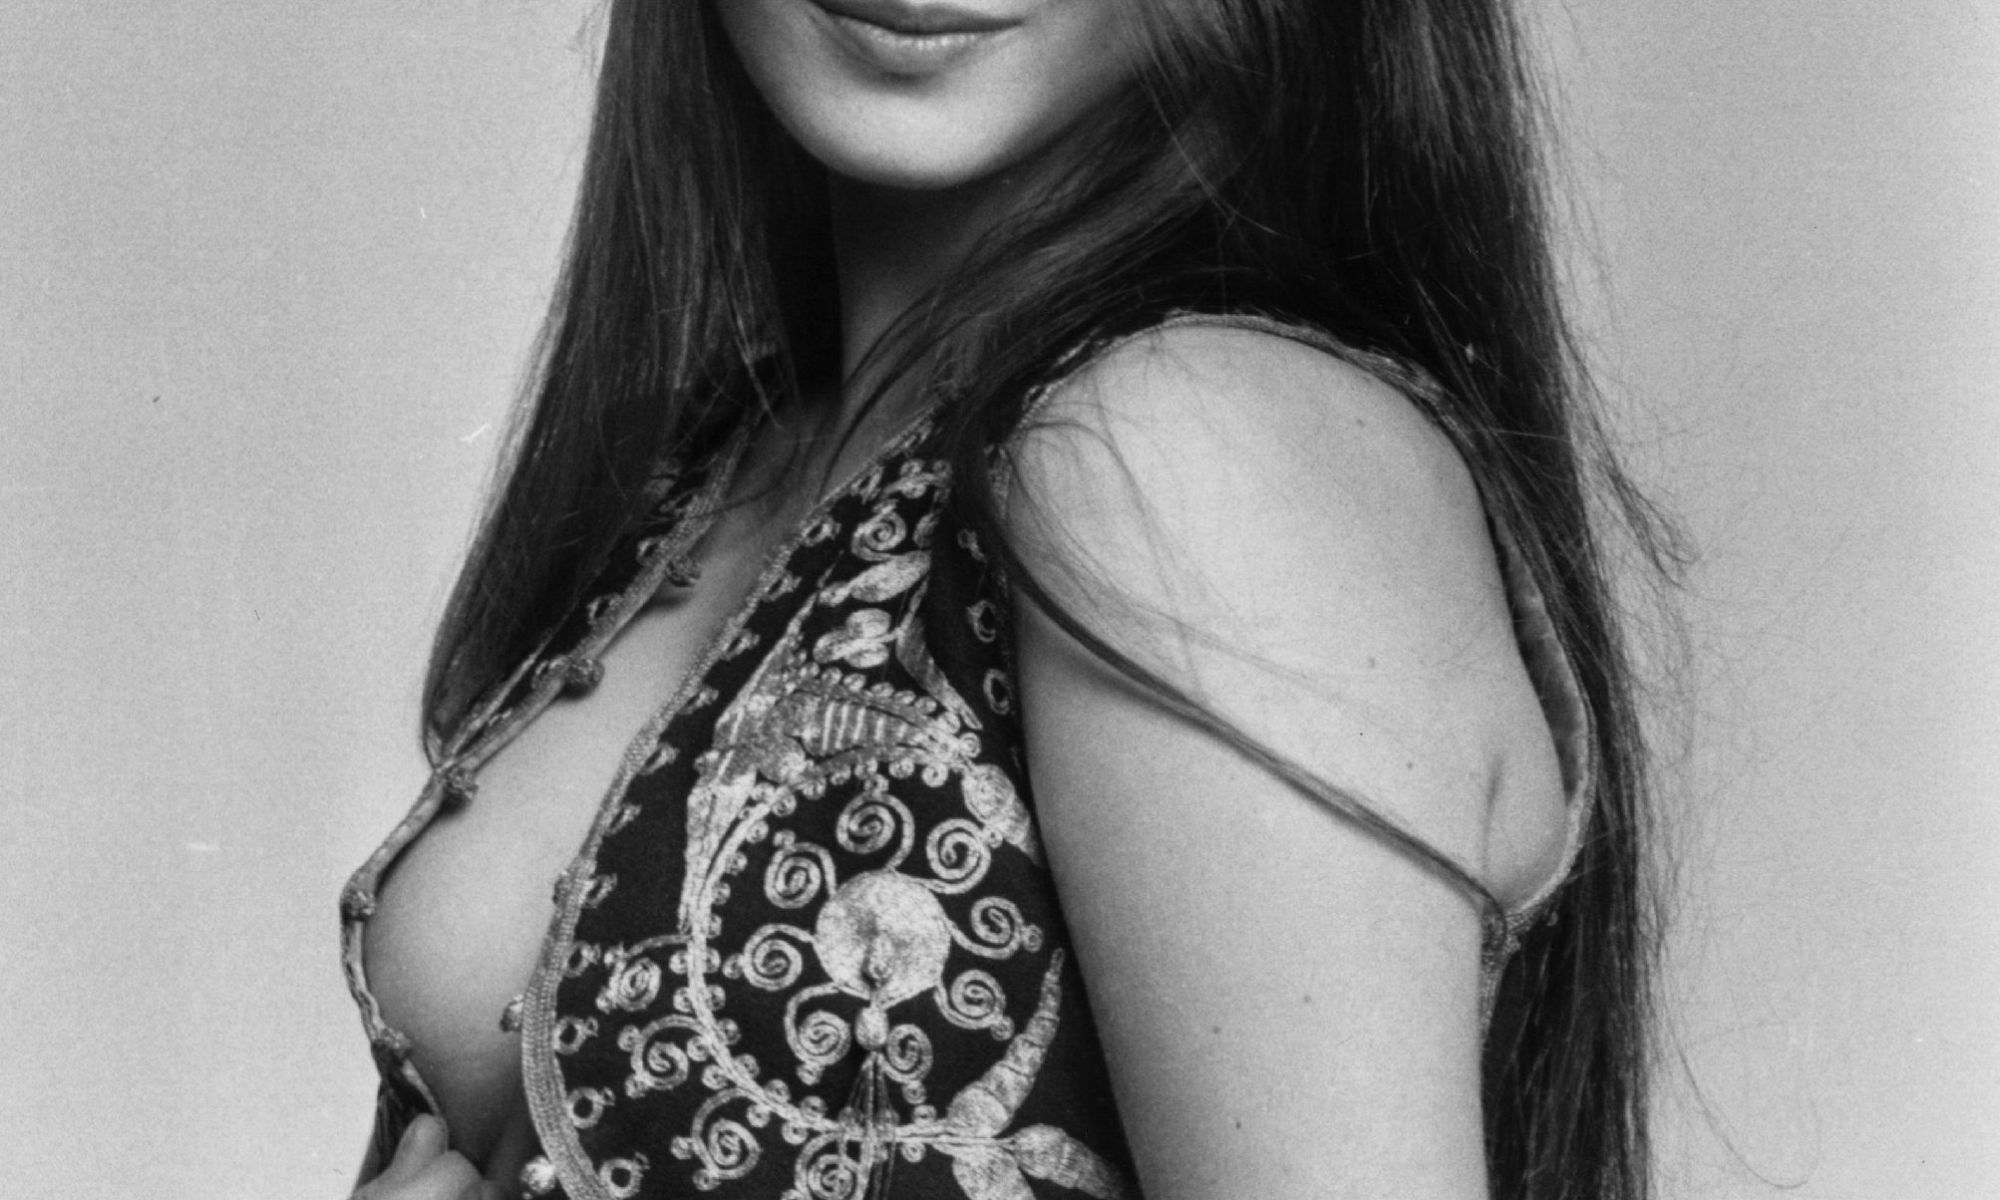 Jane Seymour, Throwback Thursday Playlist, Where Were You in 1973